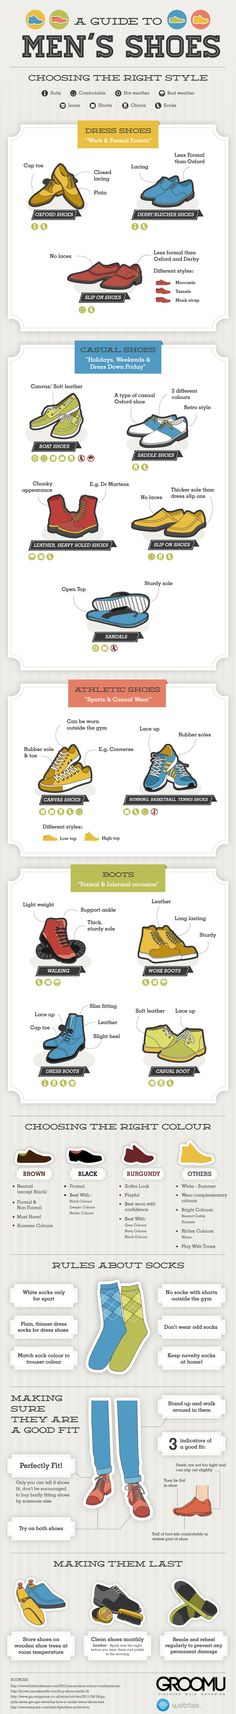 Gentlemen, here is a nice little guide to help you pick the right pair of shoes....